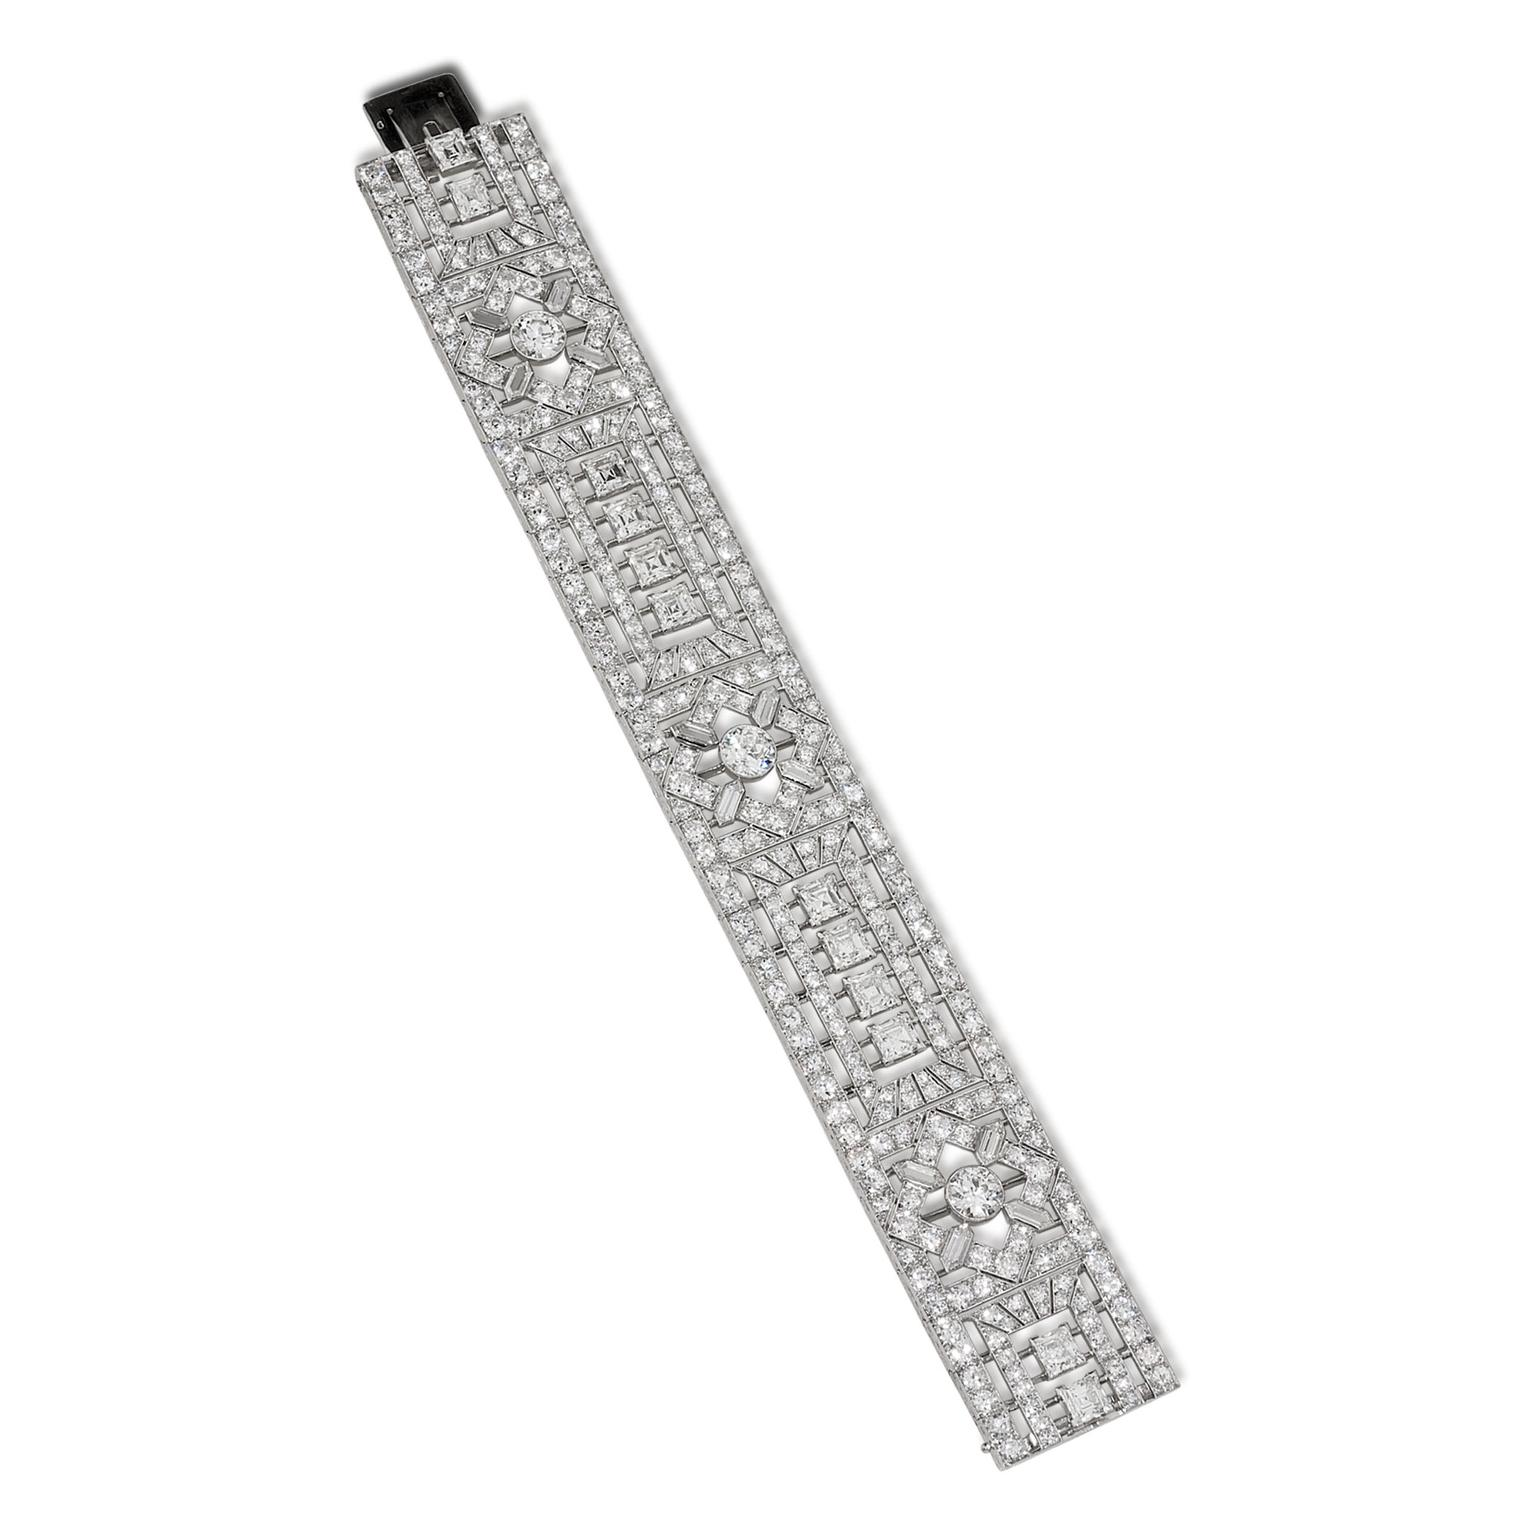 Stephen Russell Art Deco platinum diamond bracelet